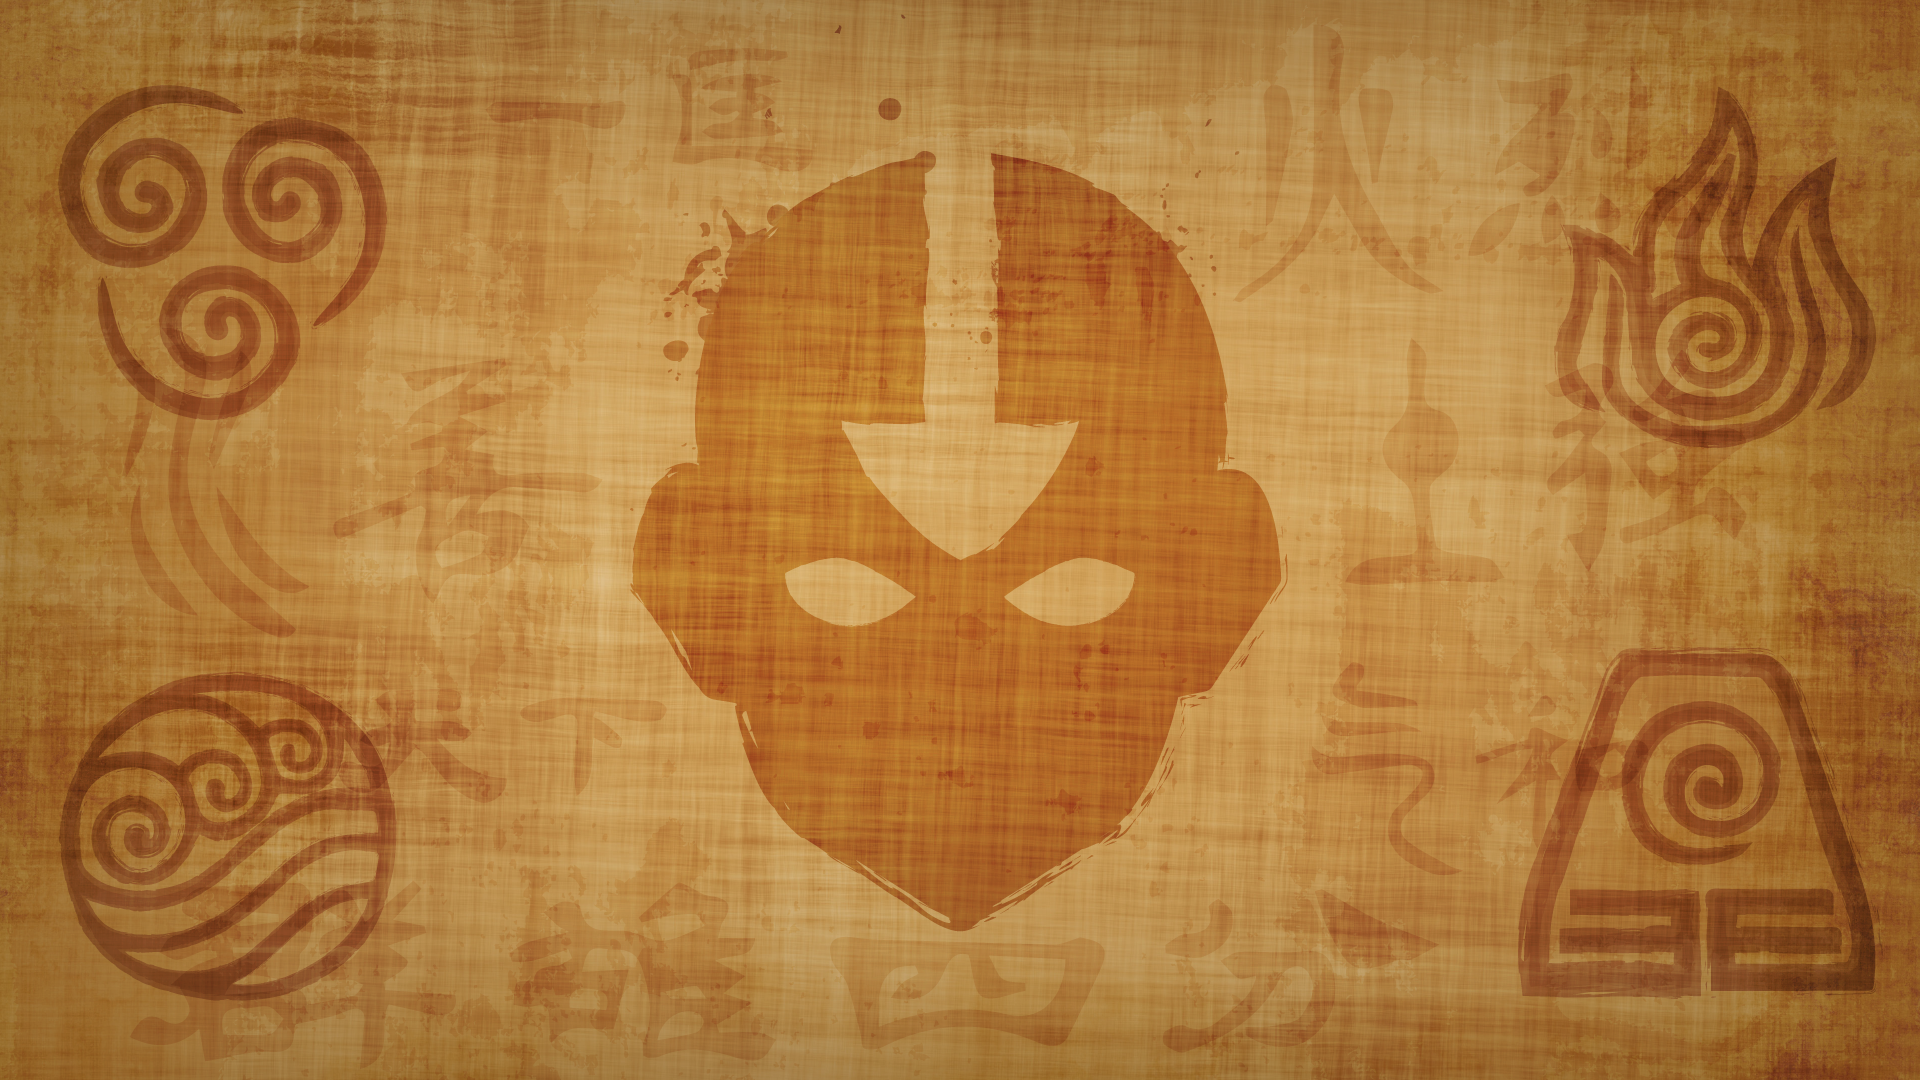 The Last Airbender Wallpapers Avatar The Last Airbender The Last Airbender Cute Laptop Wallpaper